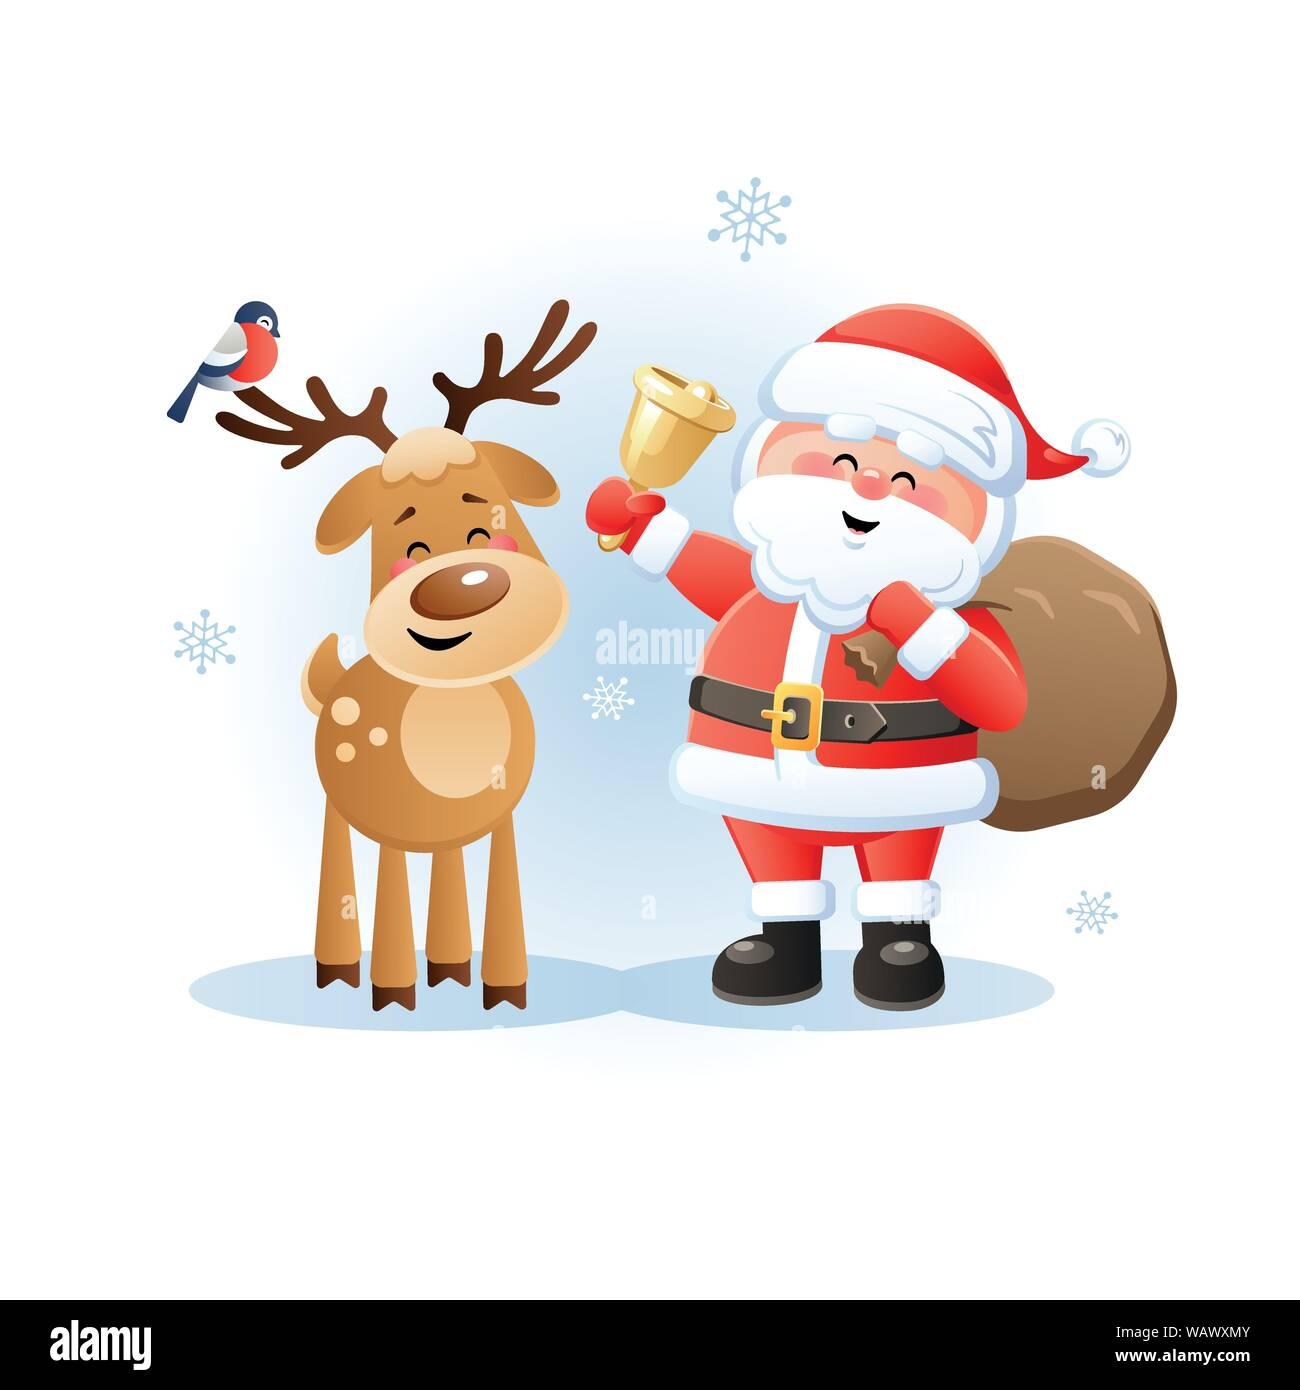 merry santa claus with reindeer and bullfinch cute christmas cartoon character vector illustration without transparent objects stock vector image art alamy https www alamy com merry santa claus with reindeer and bullfinch cute christmas cartoon character vector illustration without transparent objects image264871851 html